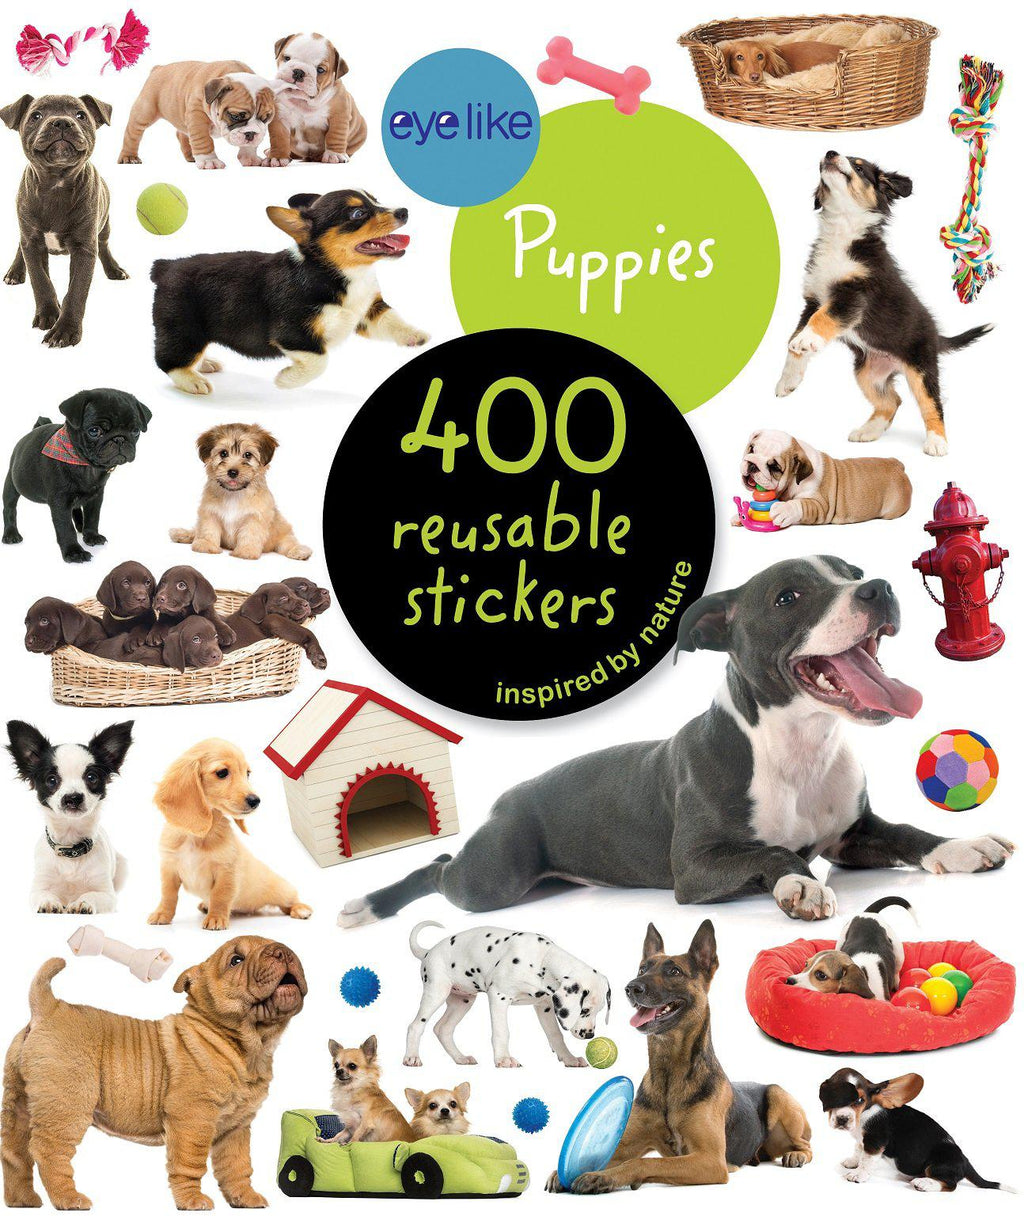 Book/Eyelike Stickers Puppies